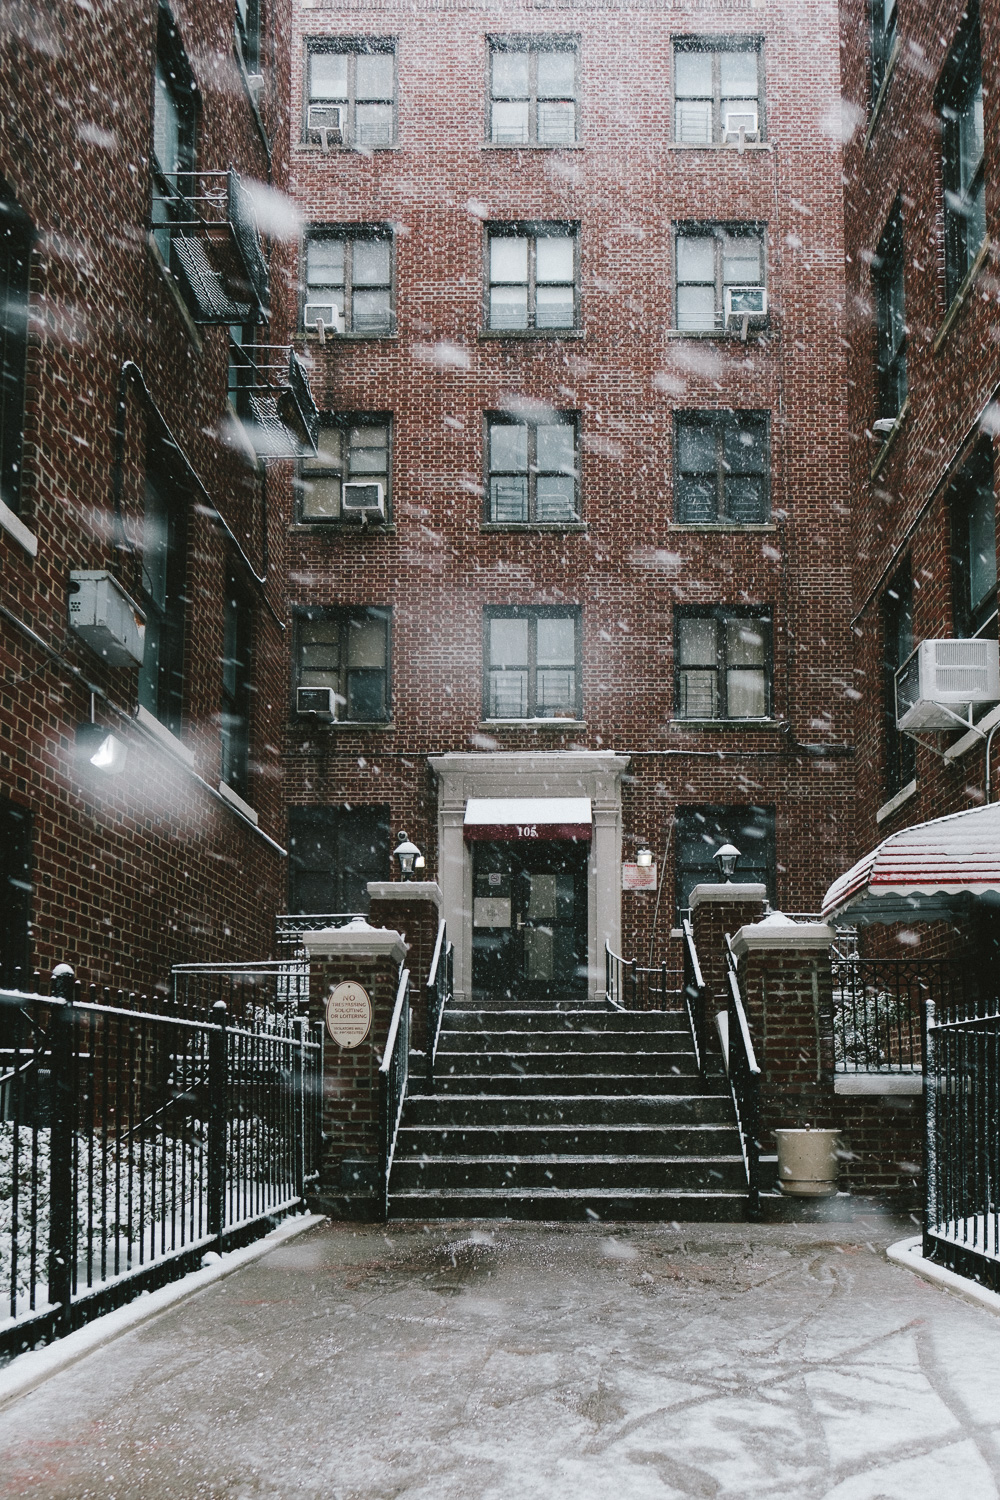 A snowy stoop in Washington Heights, Manhattan.  Fuji X-Pro 2, Fuji 16mm f/1.4.